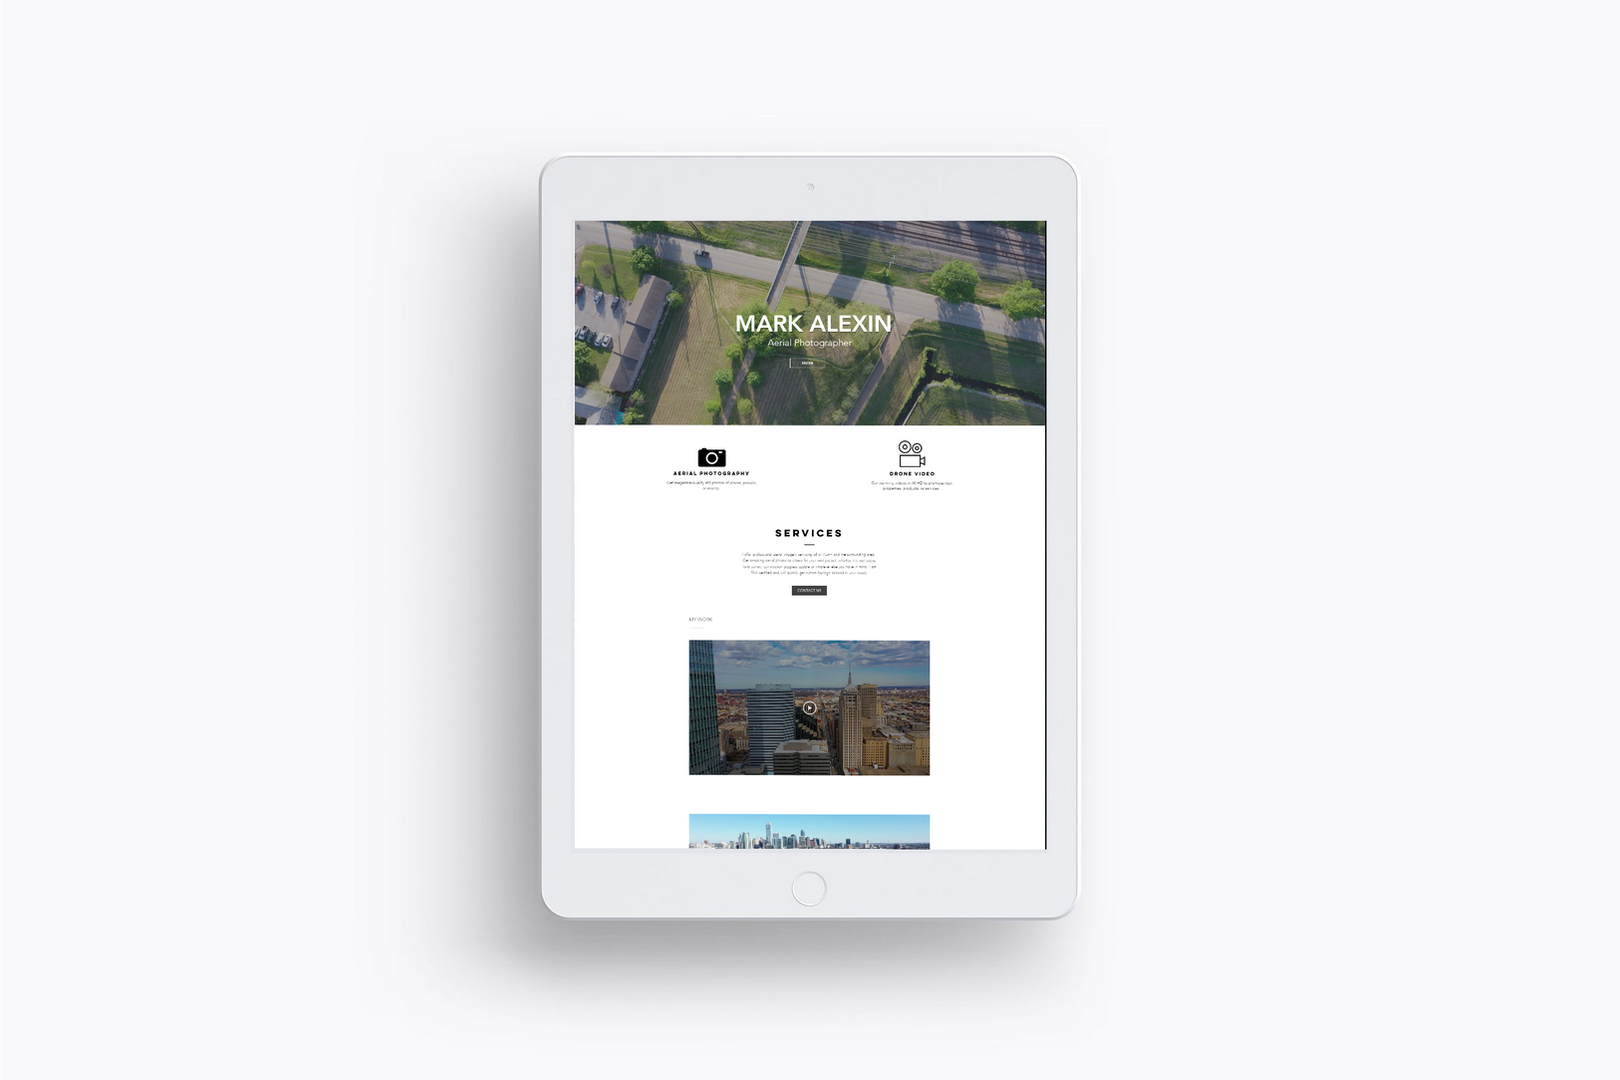 Alexin Drones tablet_ wix_four eyes media